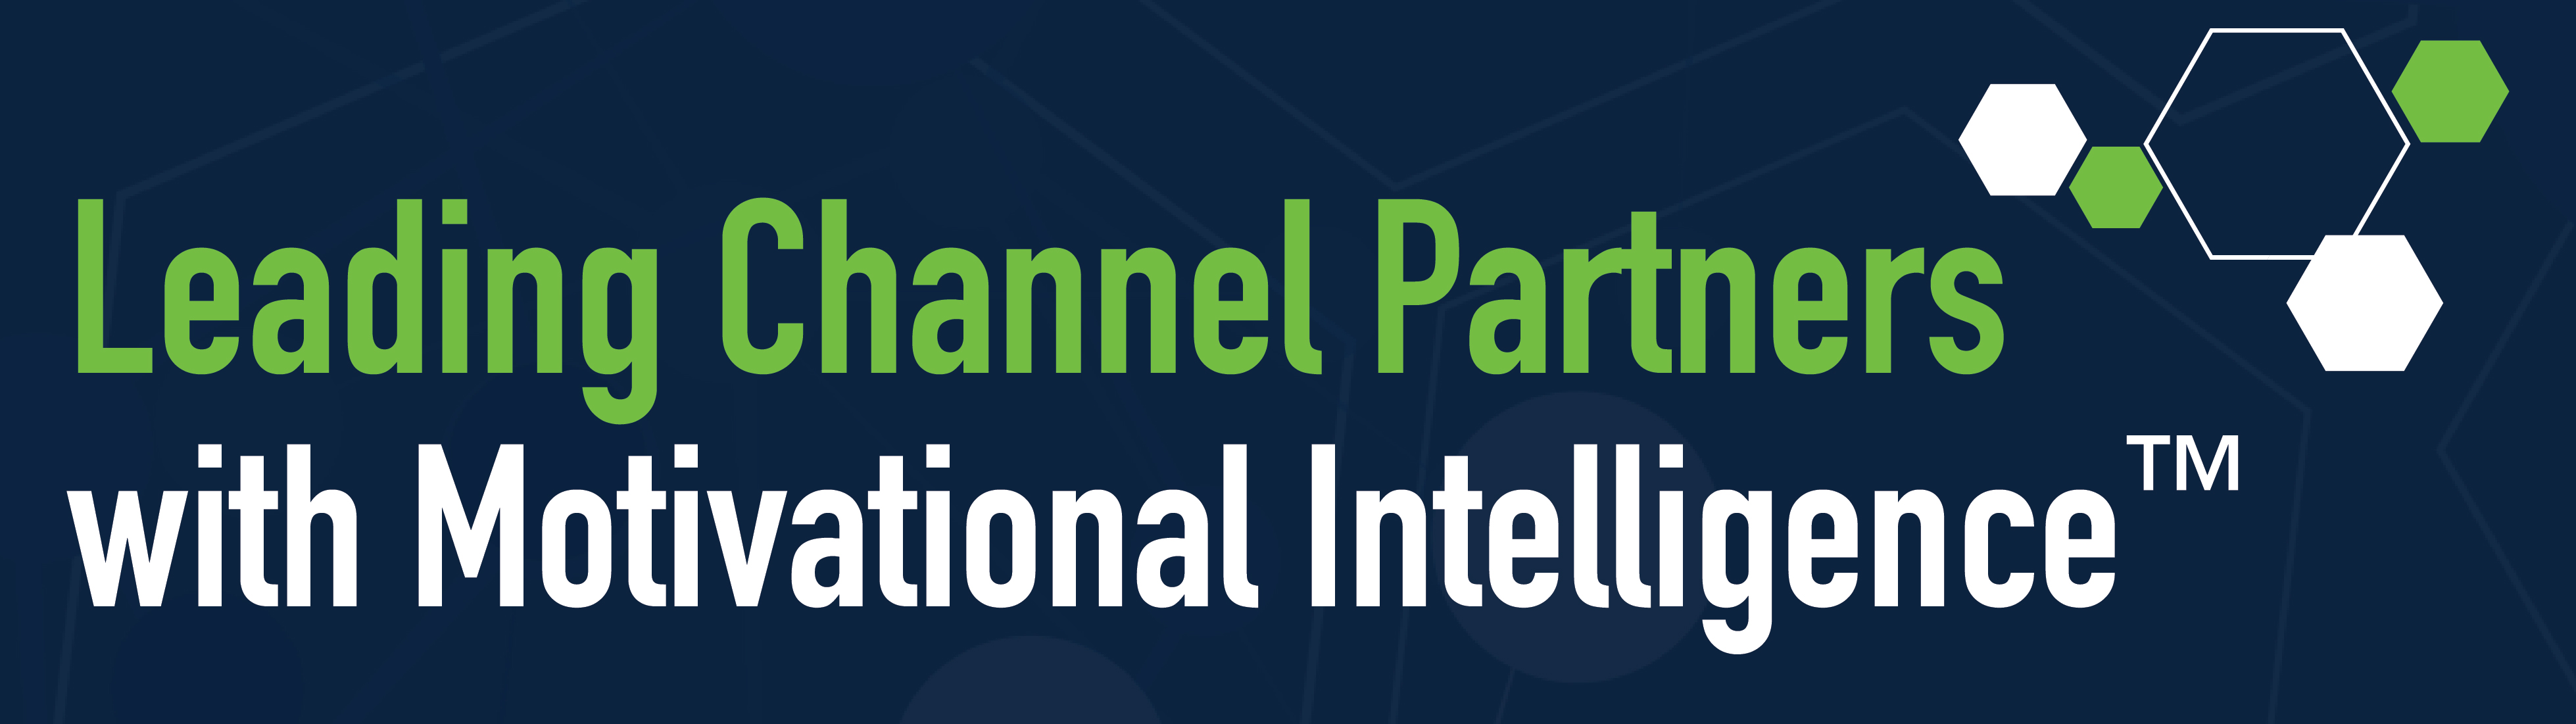 Leading Channel Partners with Motivational Intelligence™